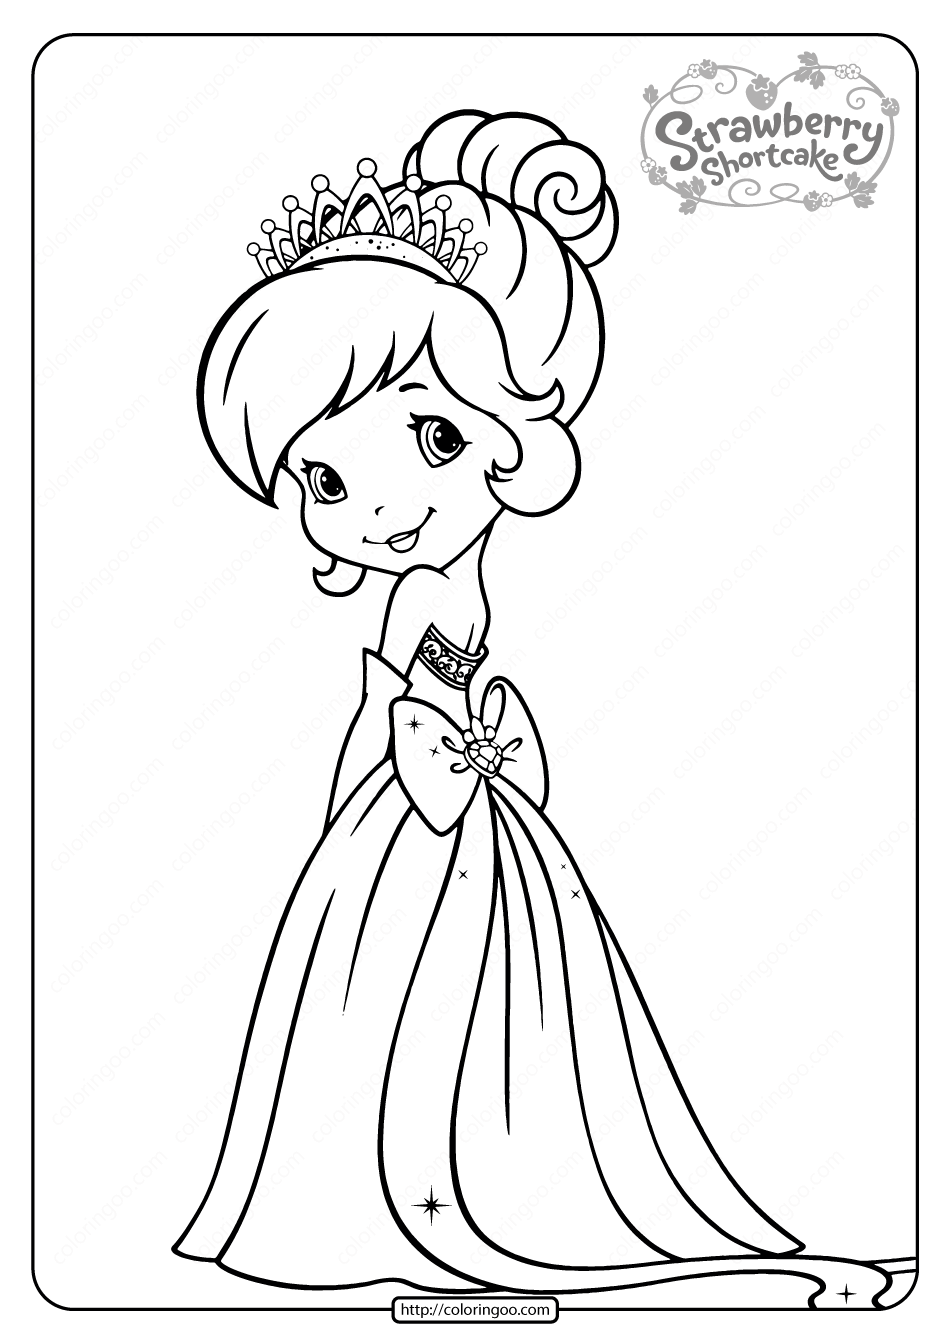 Free Printable Strawberry Shortcake Coloring Page 06